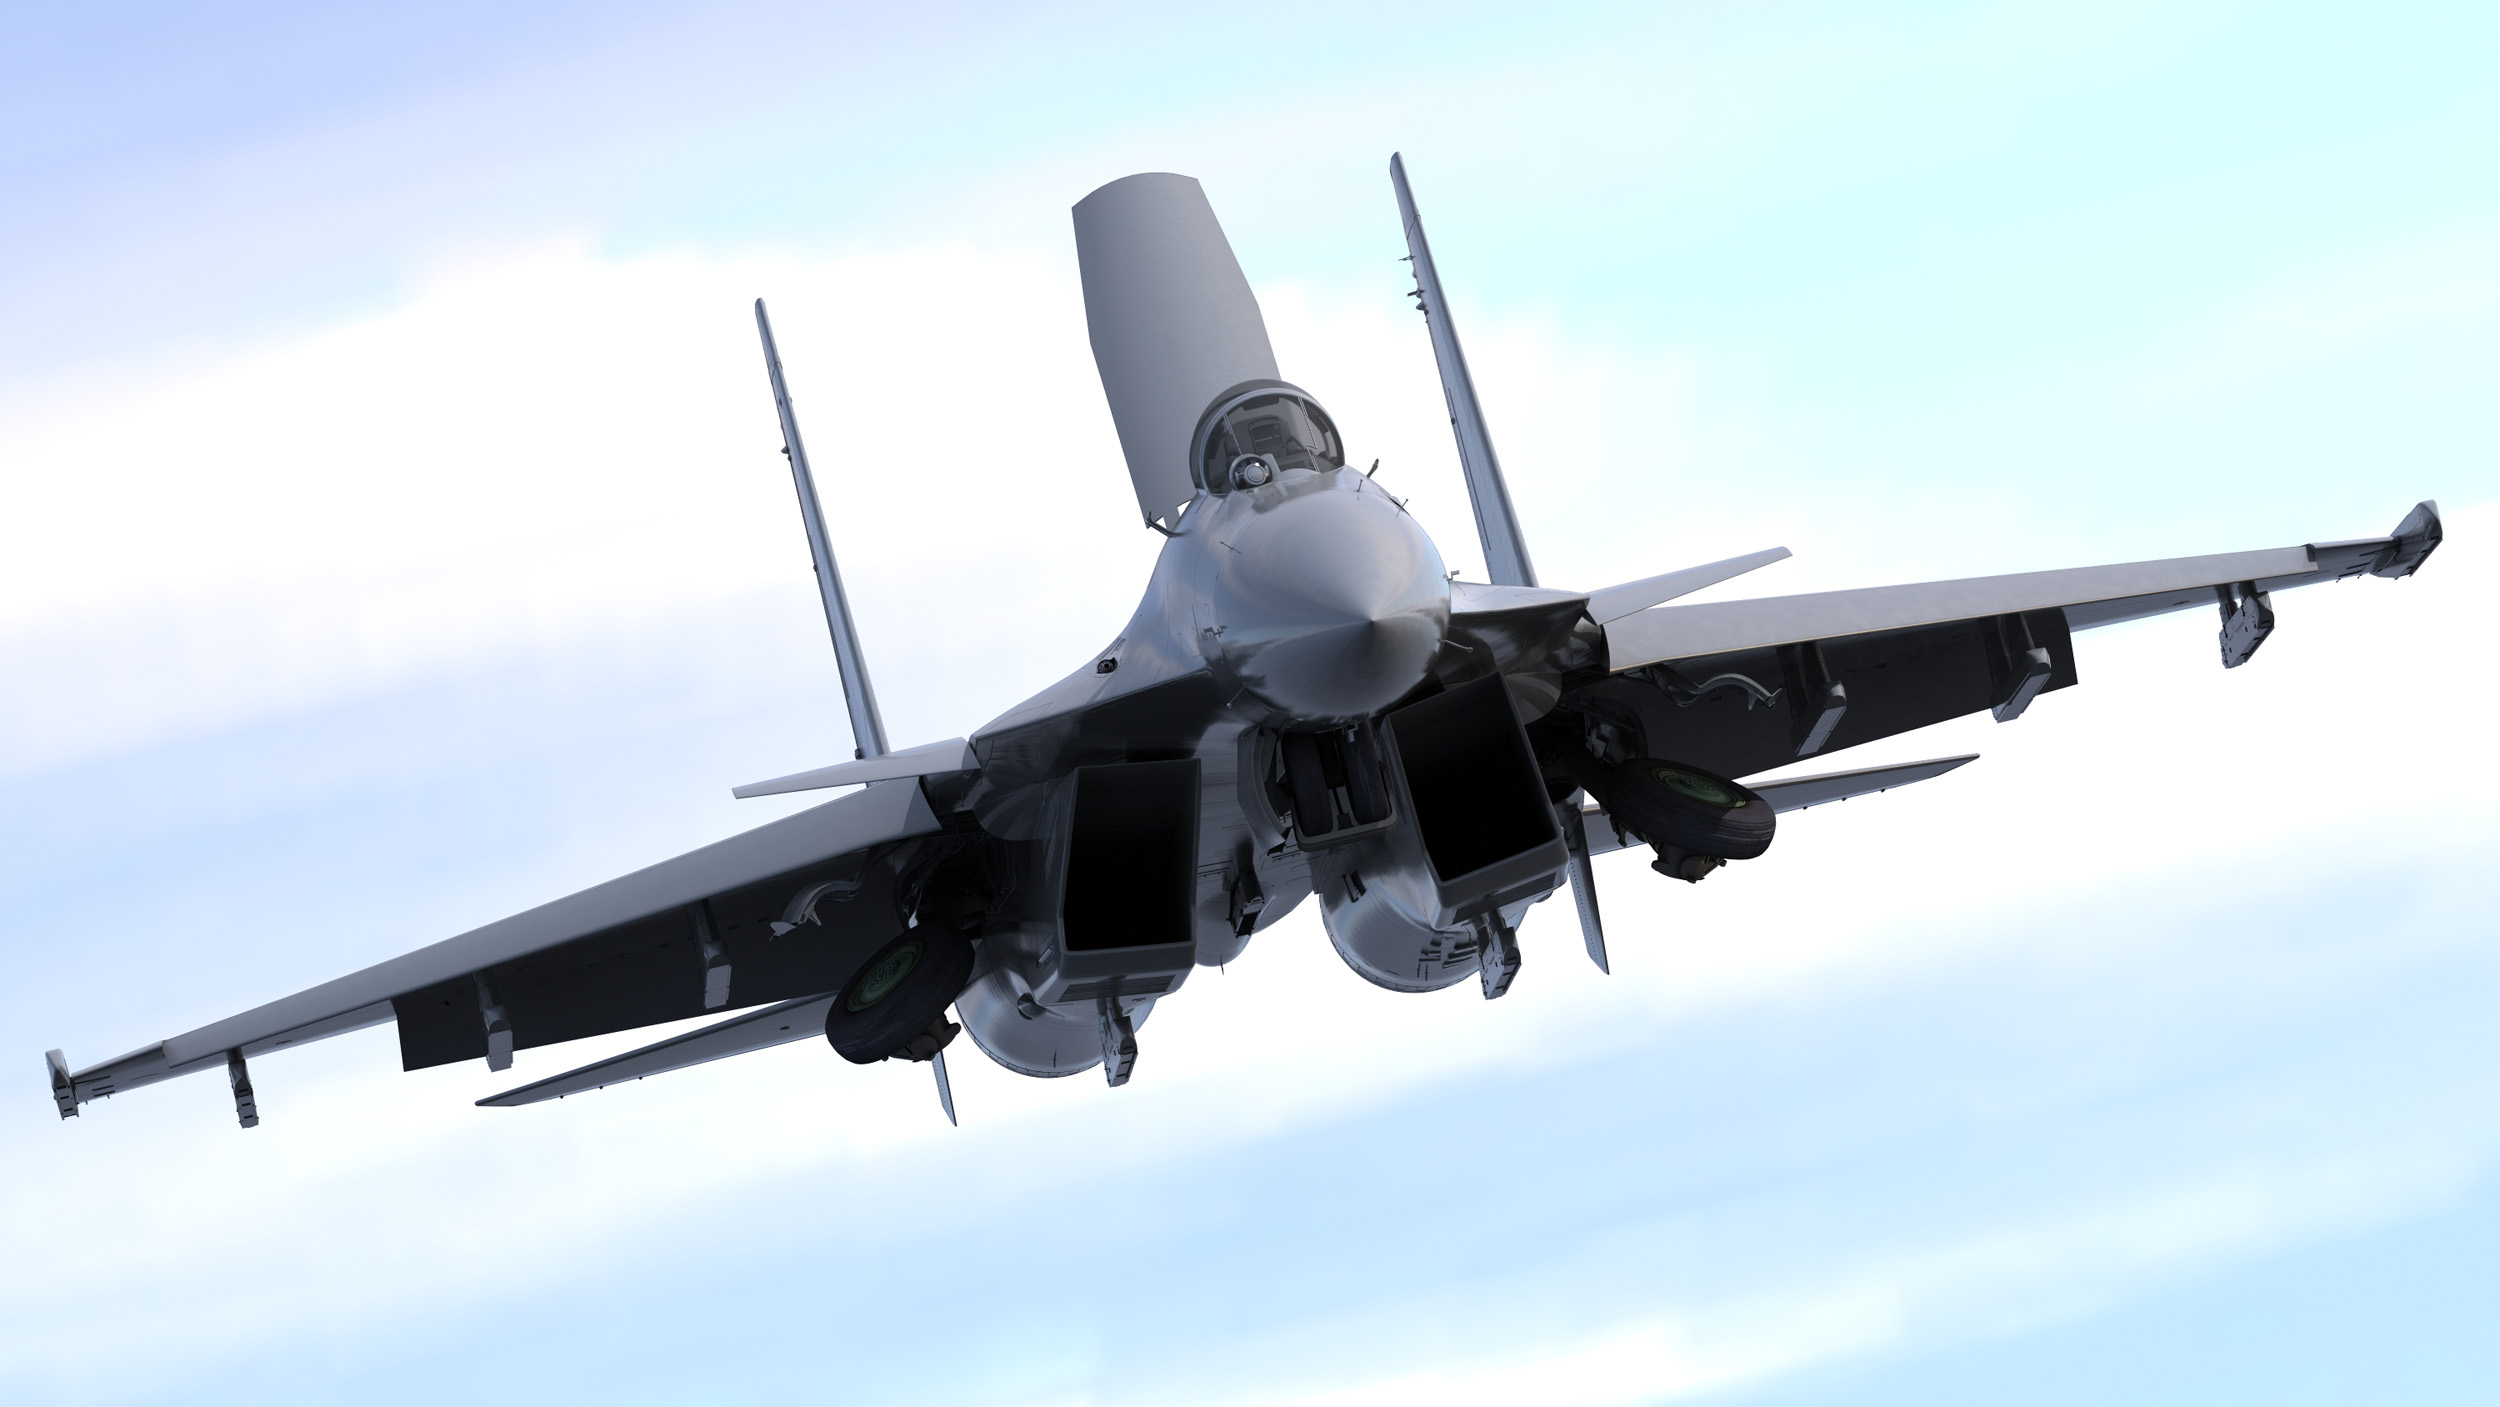 3d Action Wallpaper Hd 6 Sukhoi Su 33 Hd Wallpapers Background Images